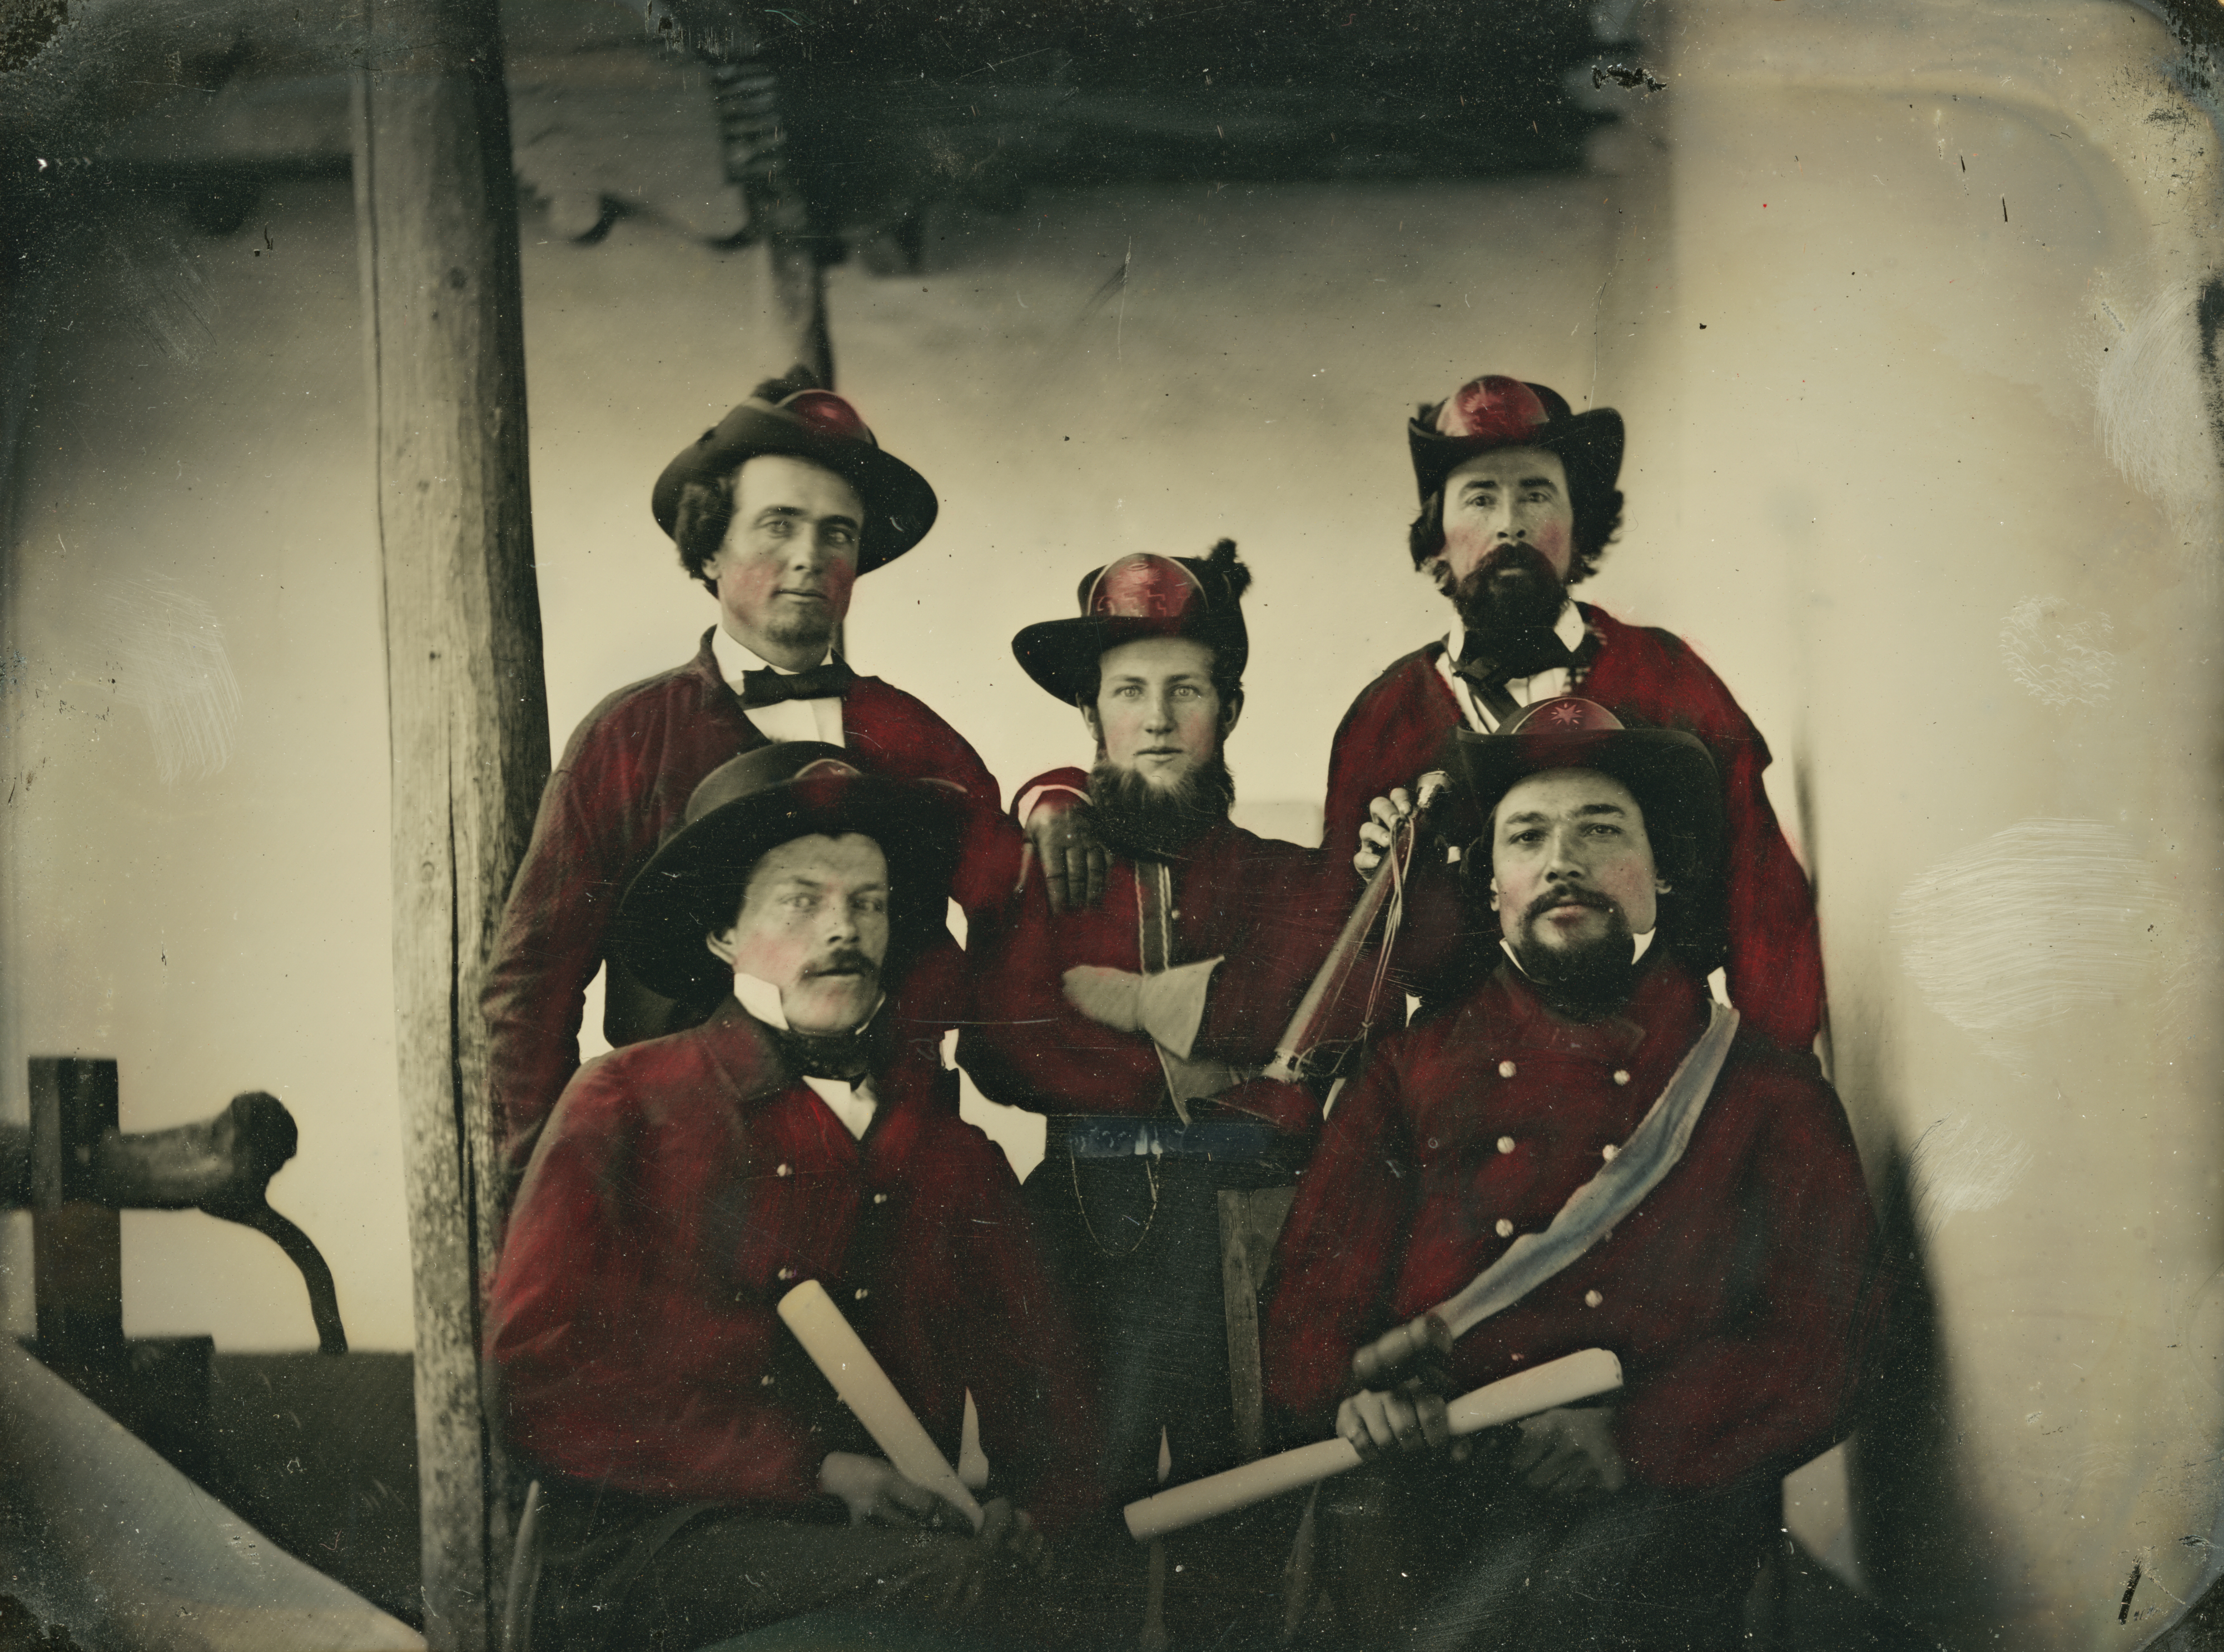 Palace Santa Fe Fire Department ambrotype